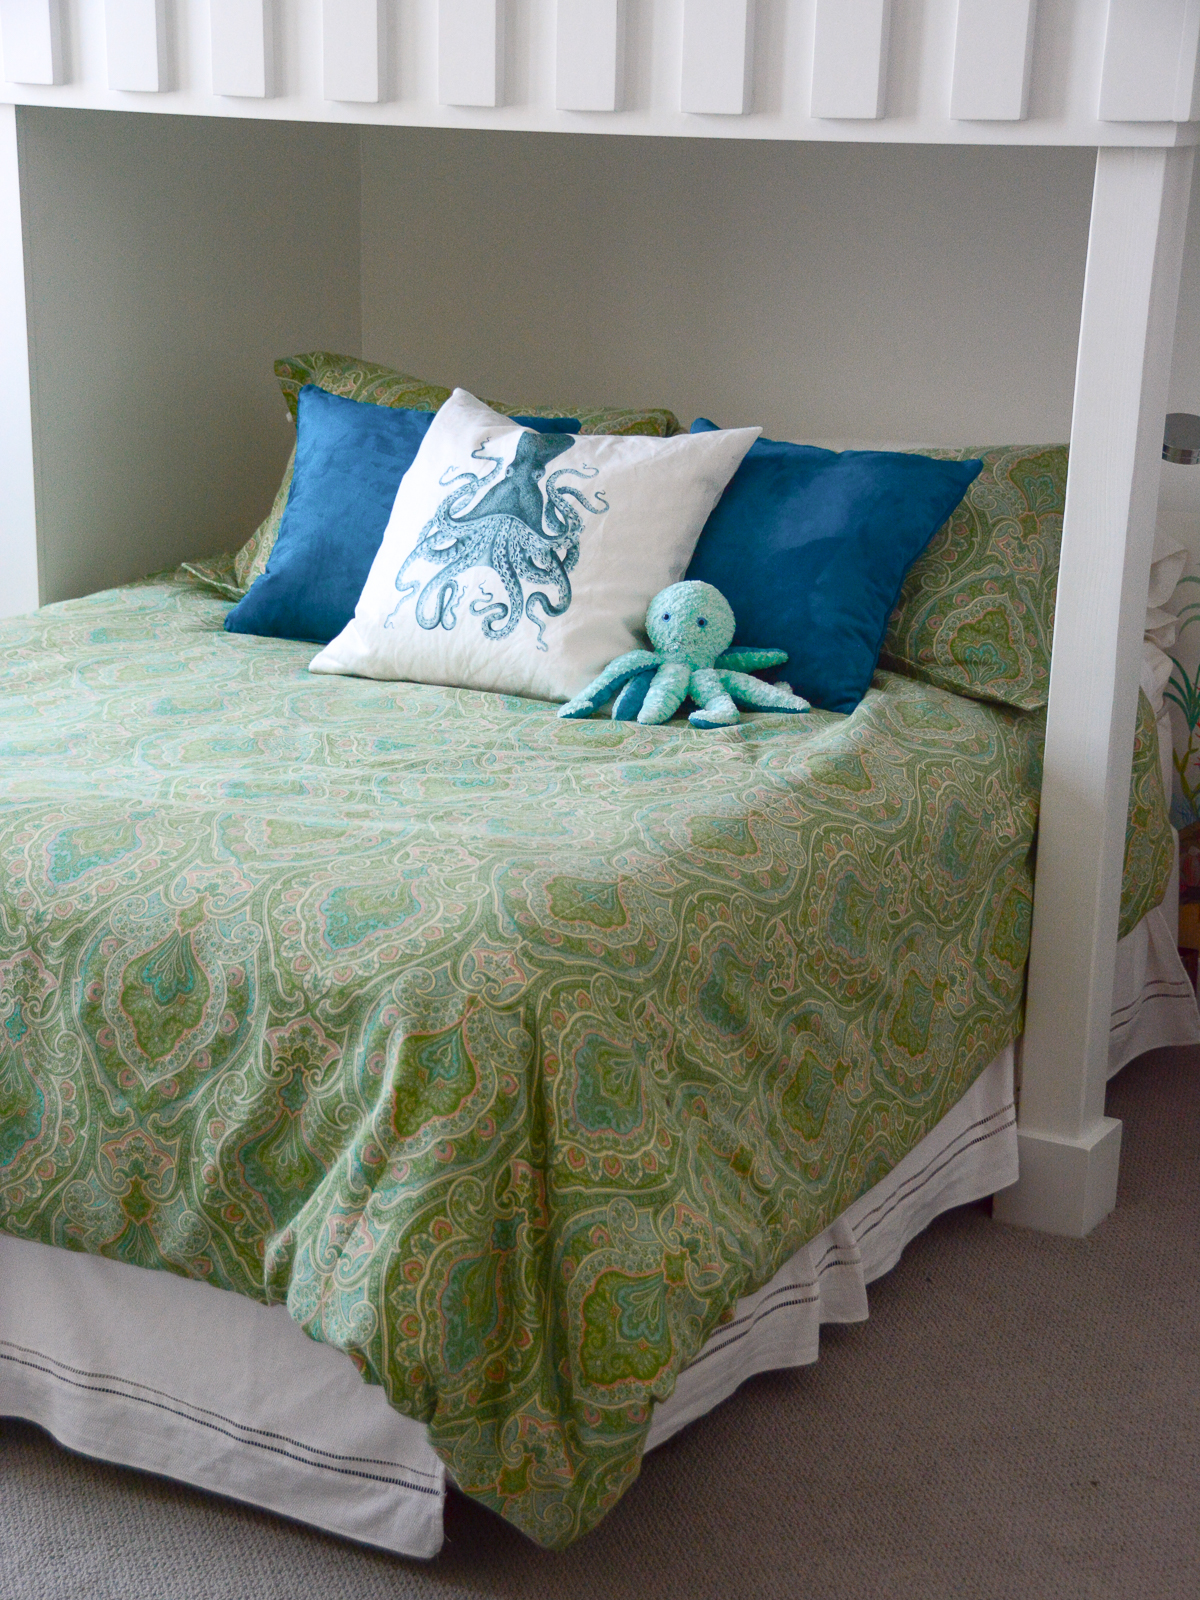 How To Sew A Simple Duvet Cover Weallsew